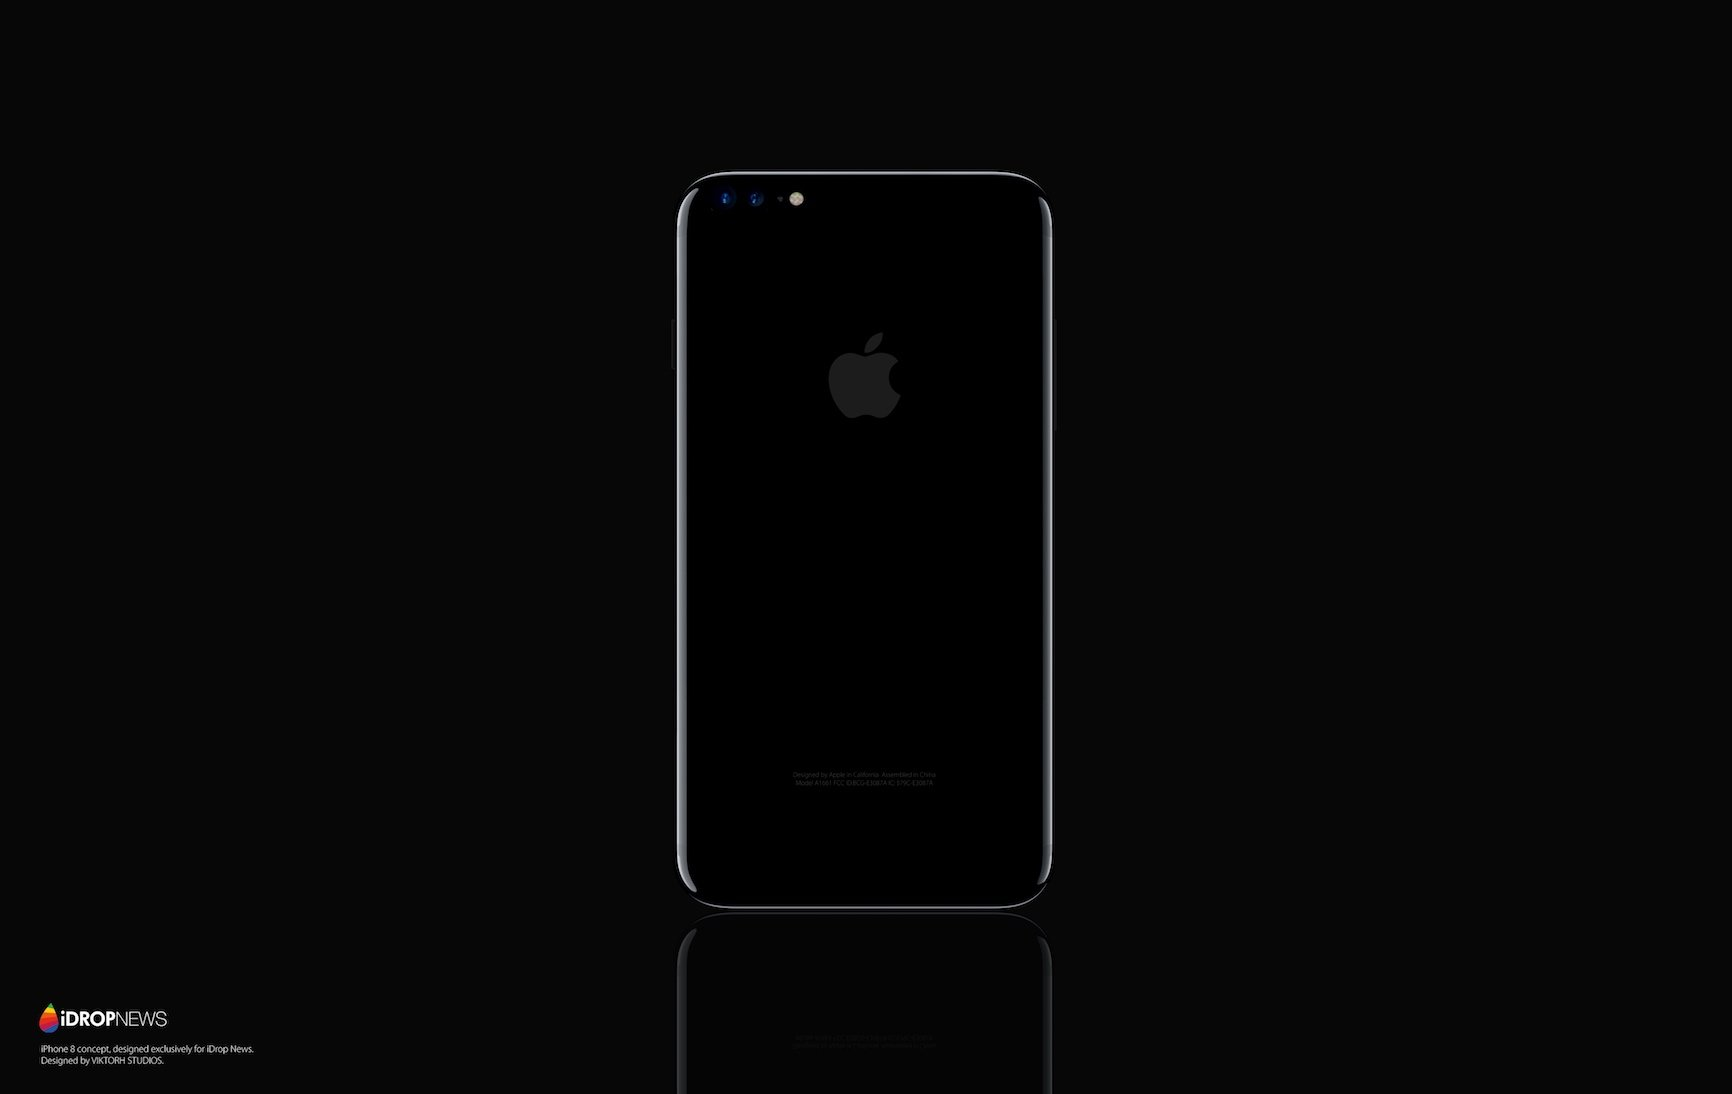 iphone-8-concept-design-no-frame_02